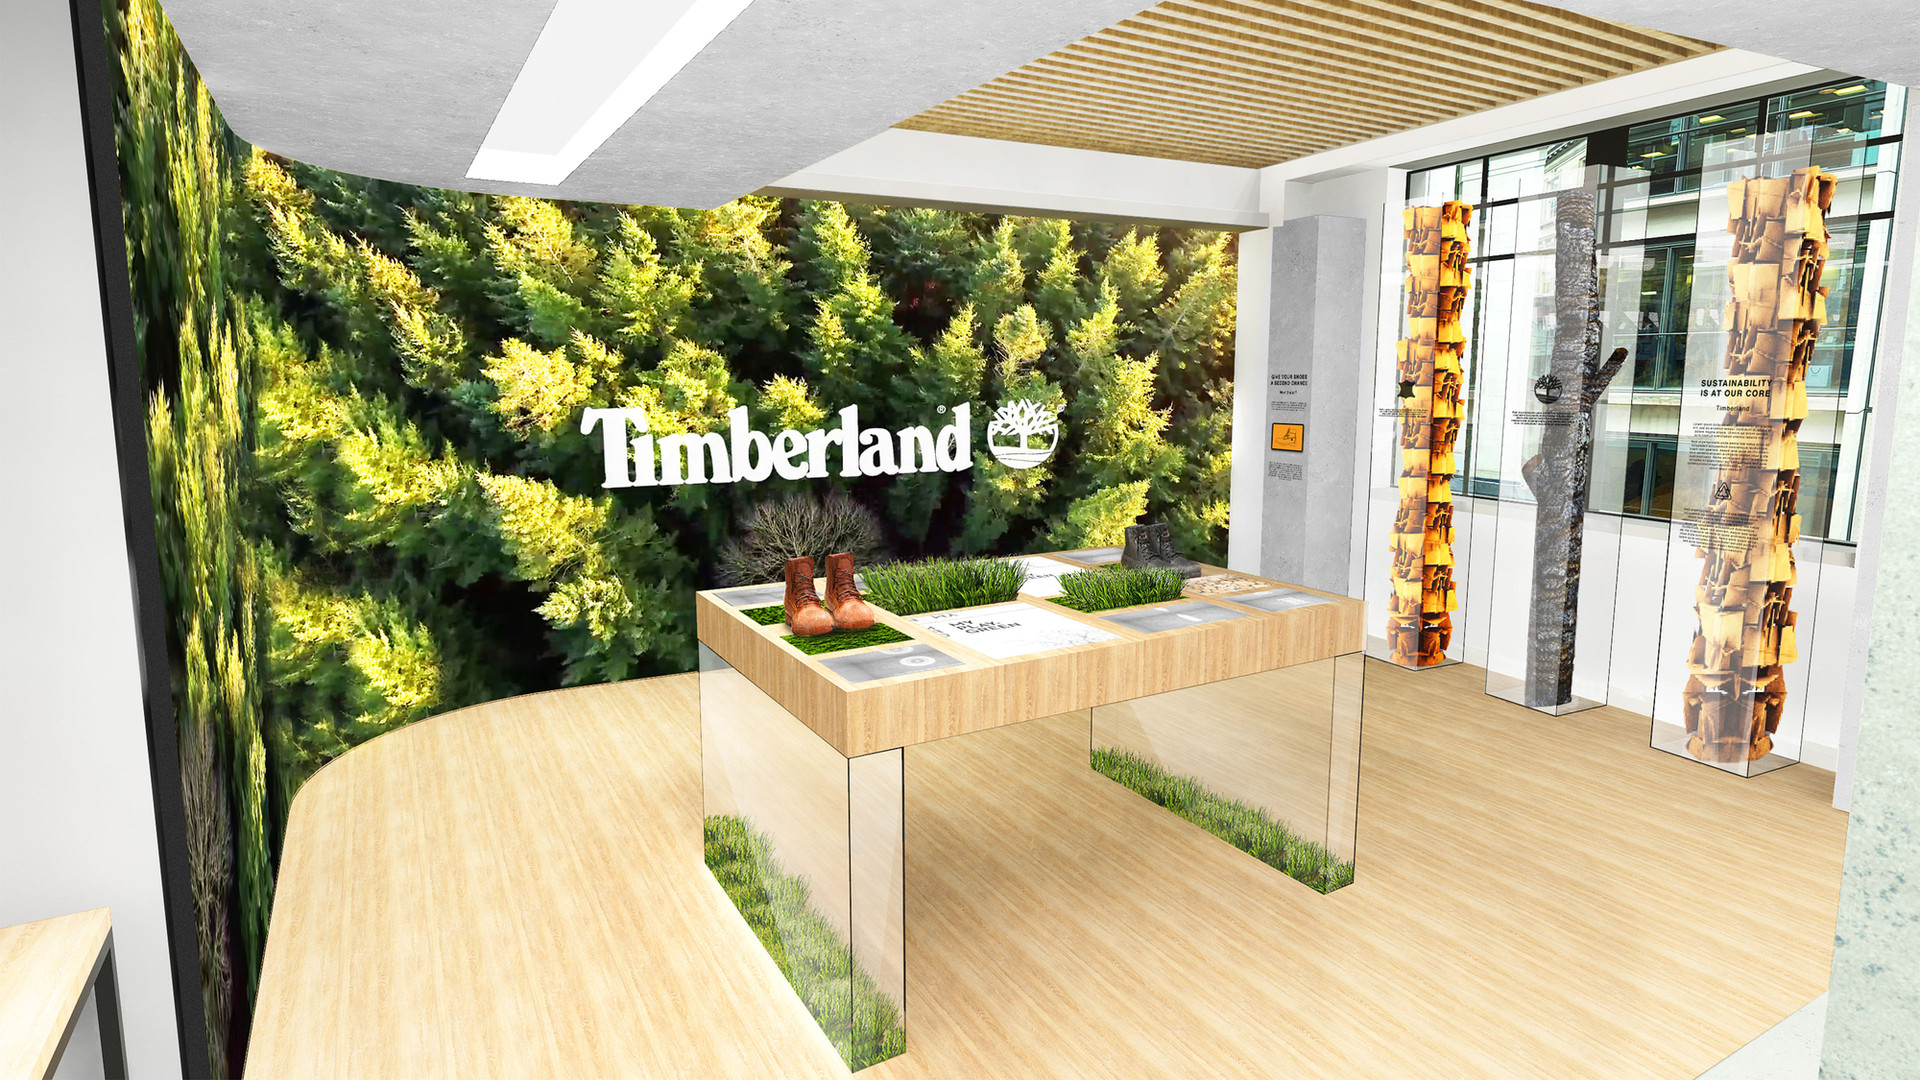 4K Gallery VF_0008s_0011_Timberland 2nd